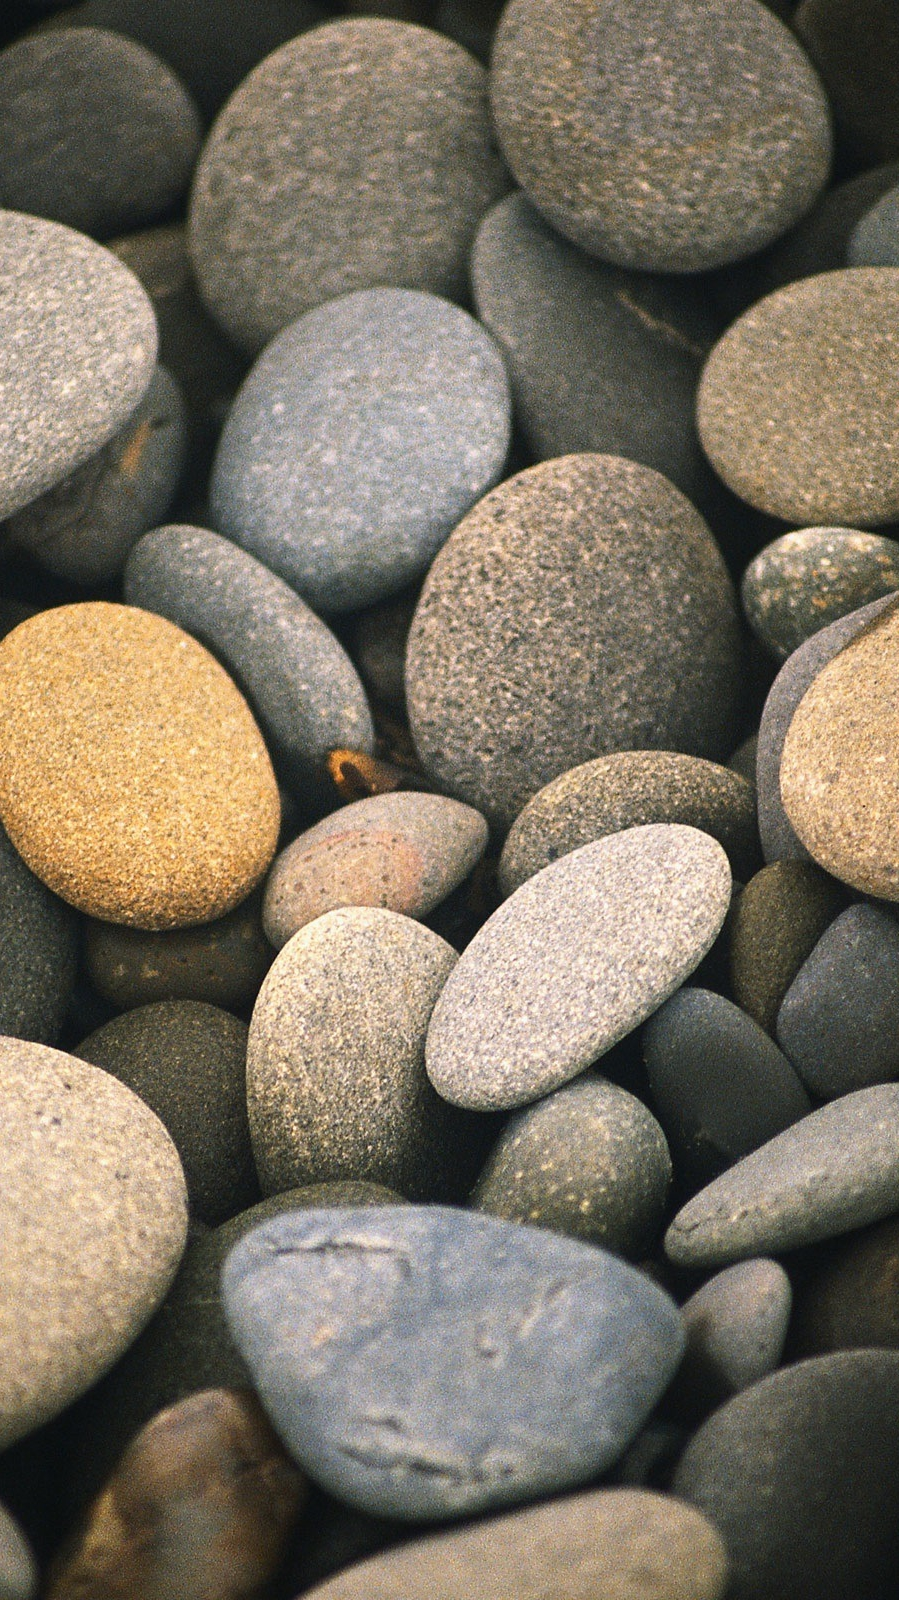 Minimalistic Nature Pebbles iPhone Wallpaper iphoneswallpapers com